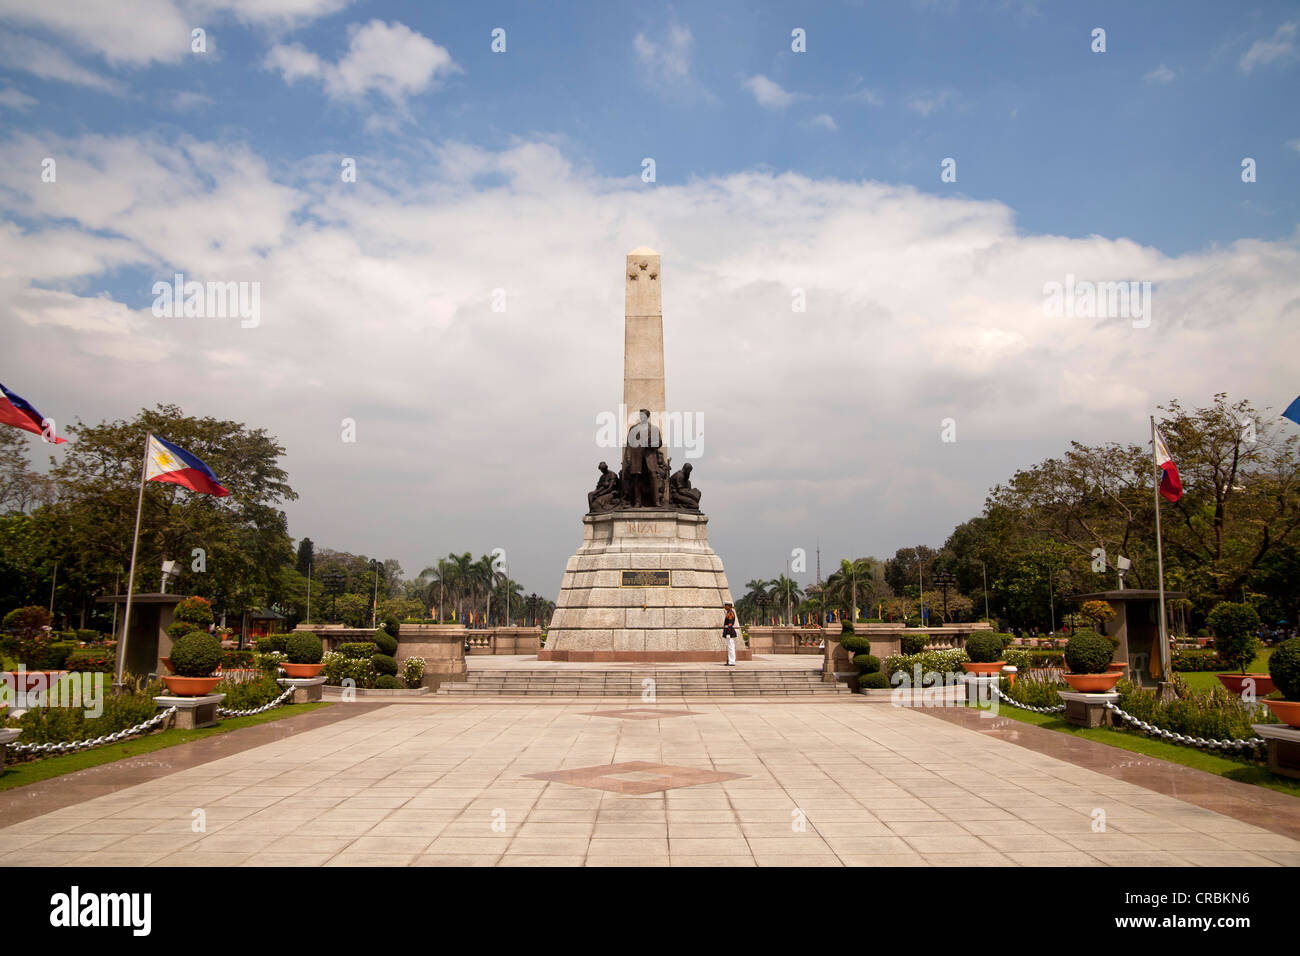 The Rizal Monument in Rizal Park or Luneta, Manila, Philippines, Asia - Stock Image